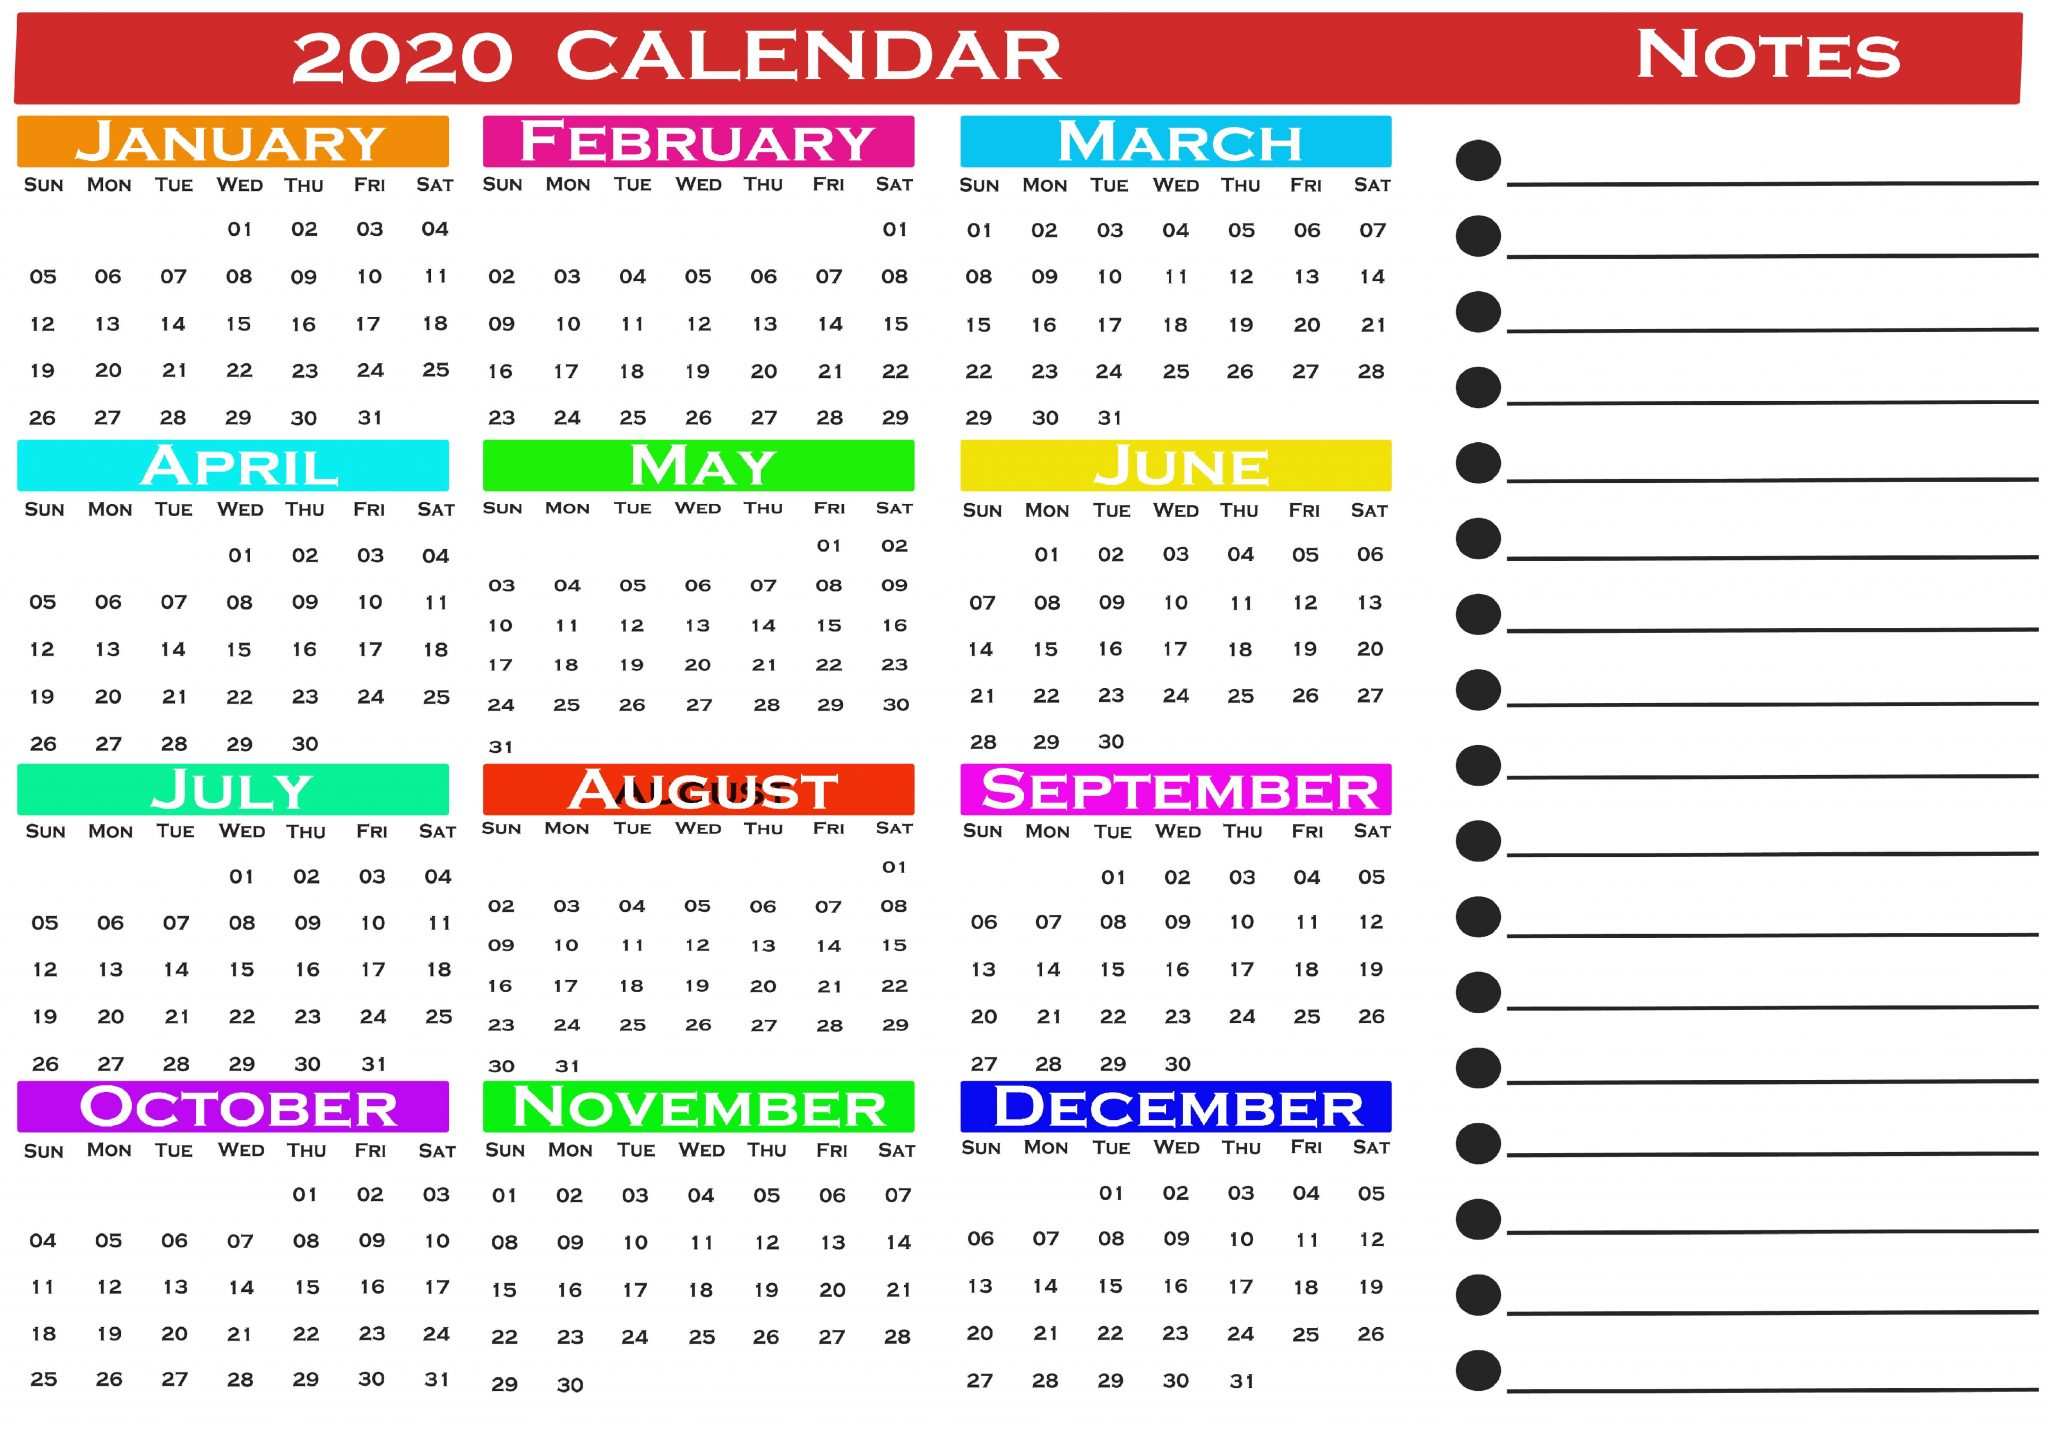 calendar 2020 printable with notes